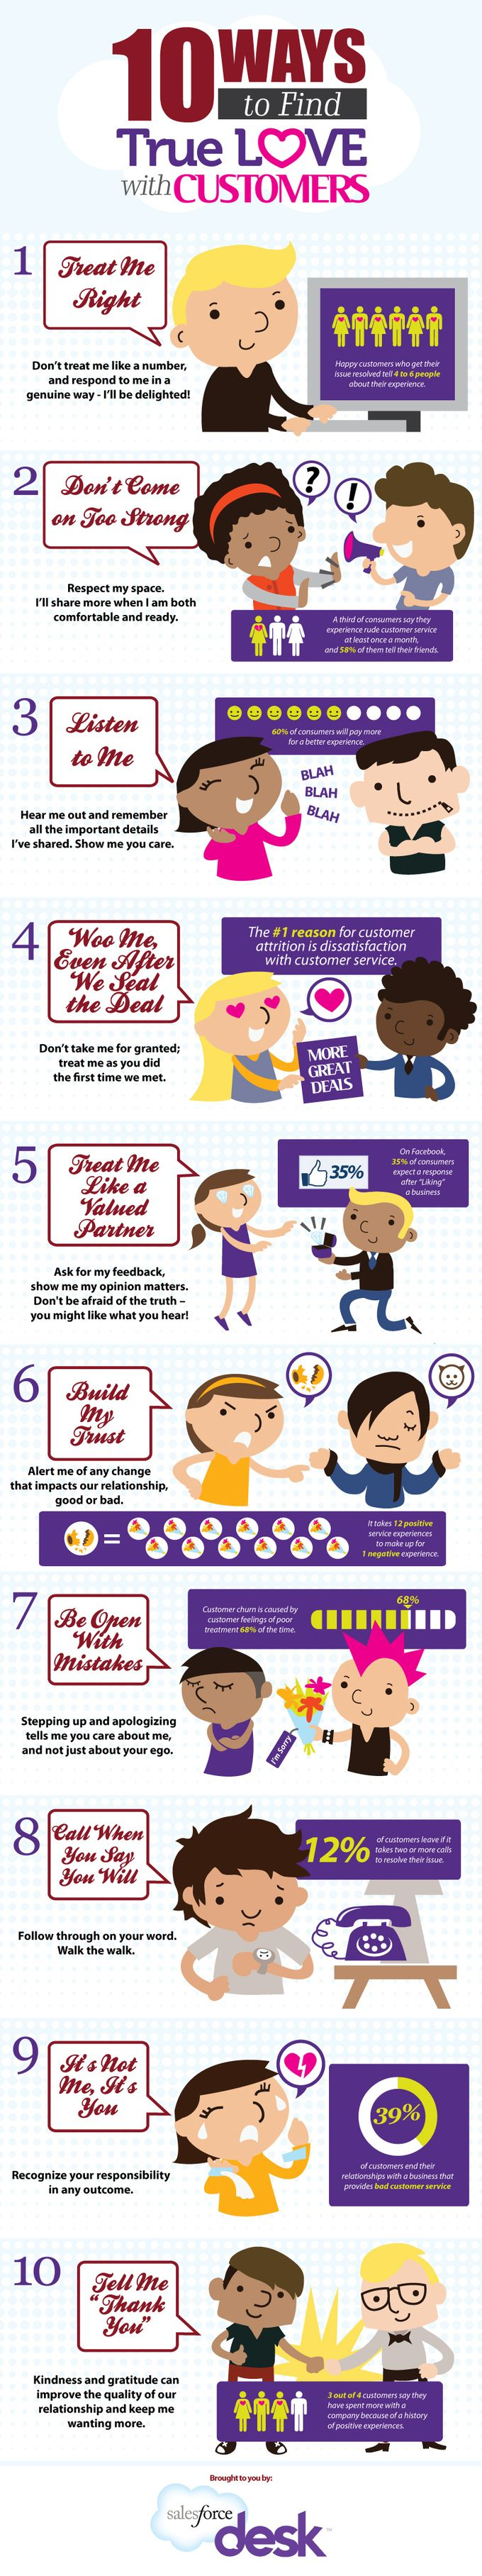 Customer Service Training: 10 Ways to find true love with Customers #infographic